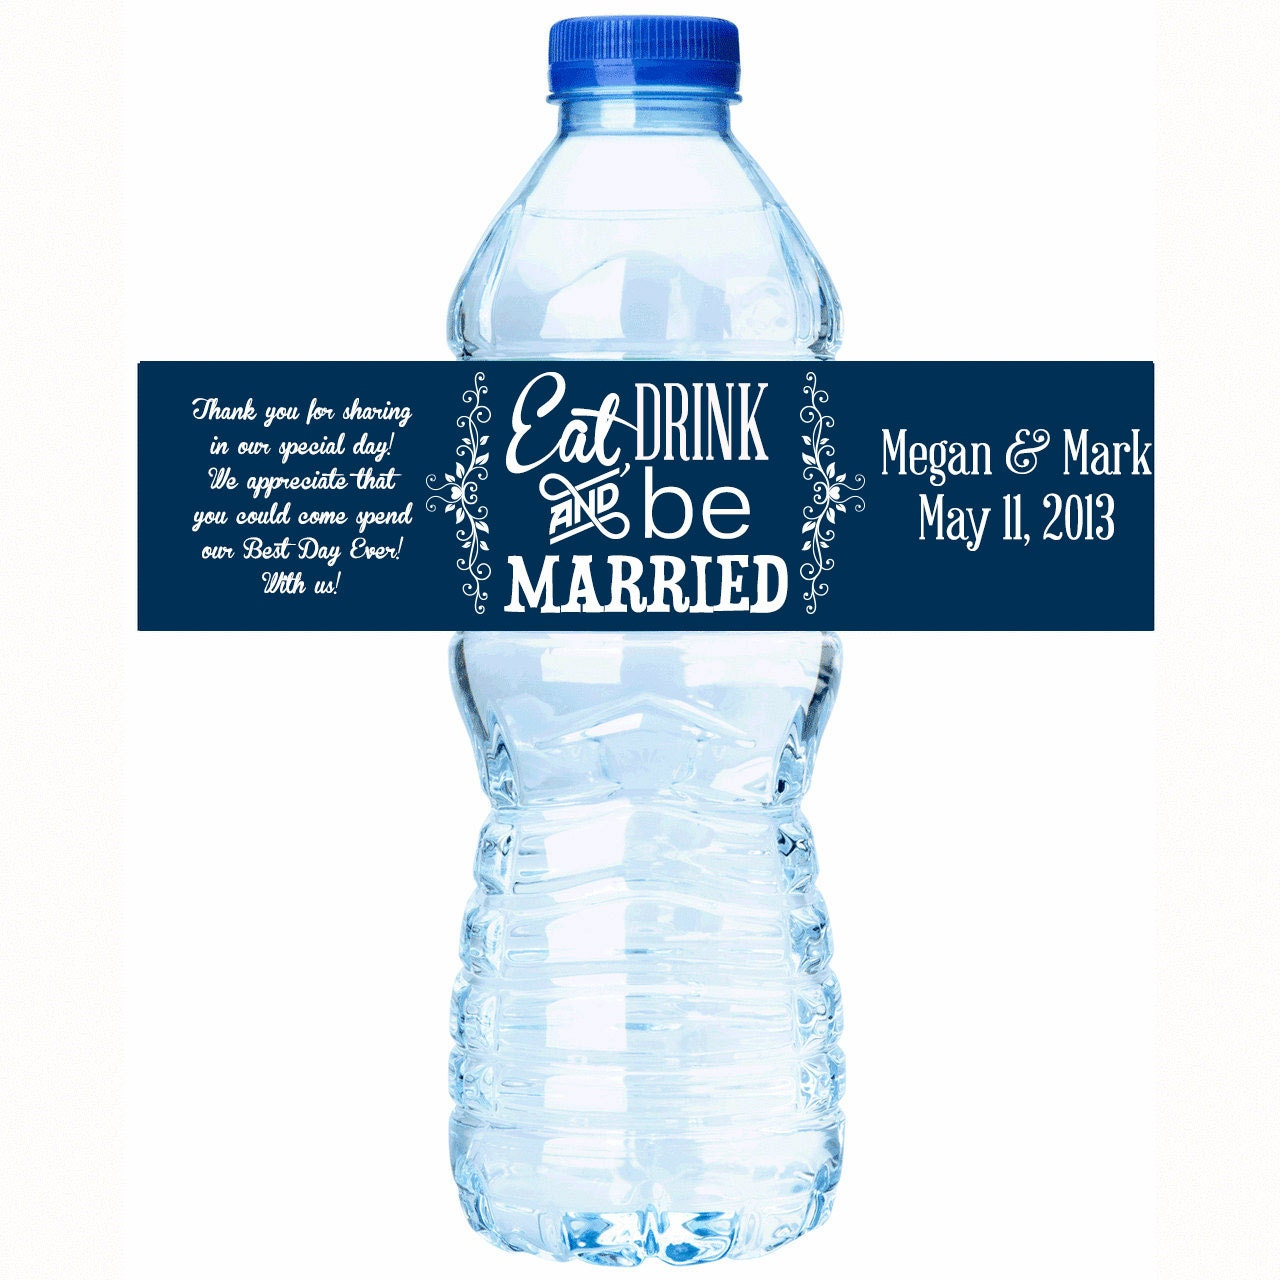 Eat drink and be married wedding water bottle labels for Decor water bottle